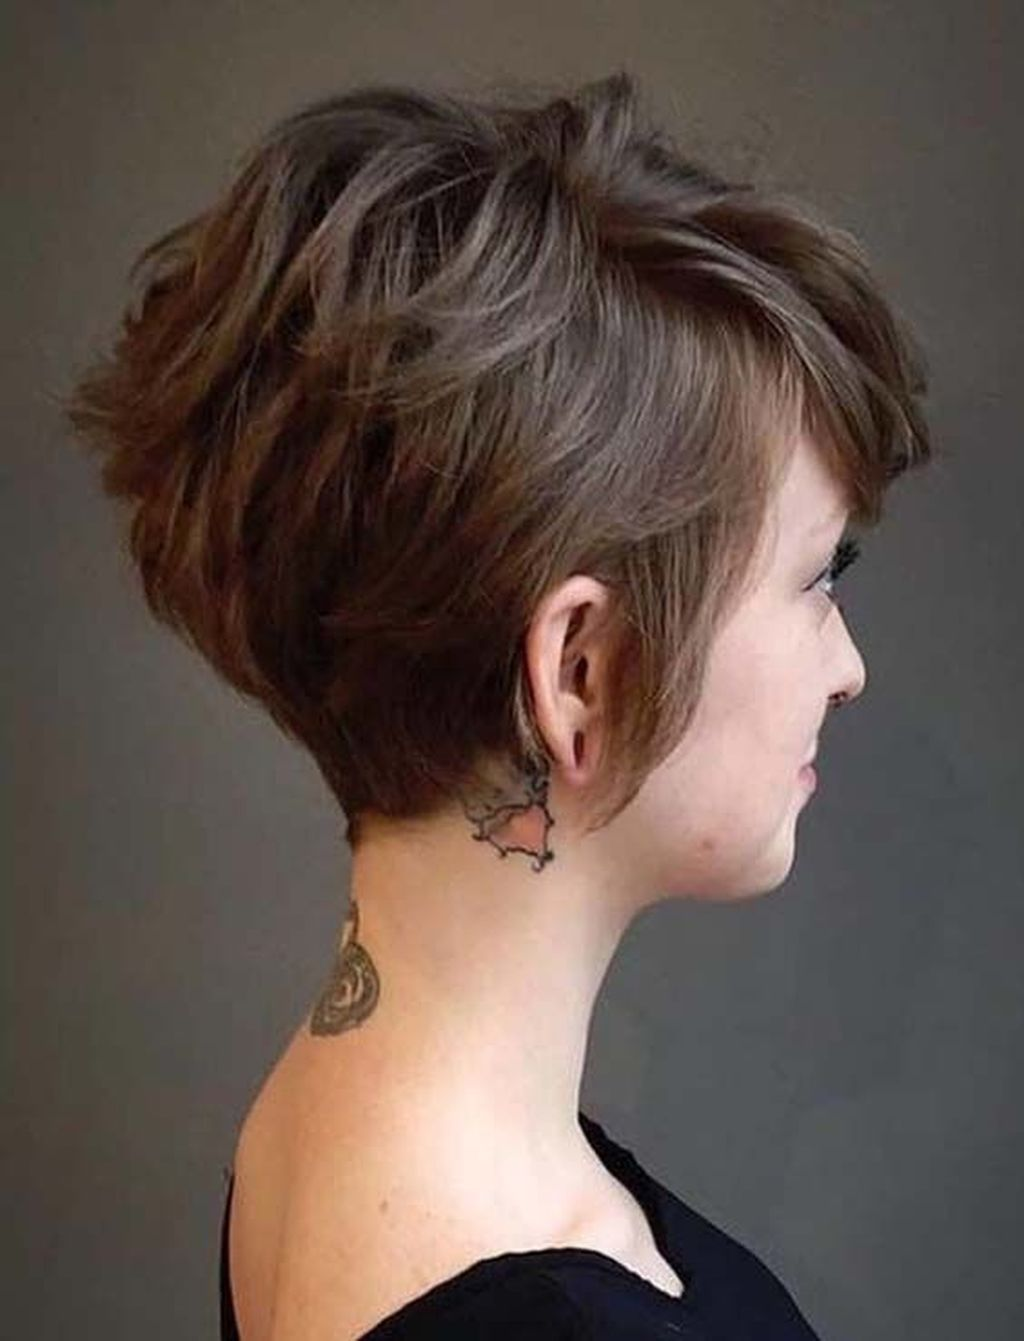 Discussion on this topic: 10 Stylish Short Brown Hairstyles You Can , 10-stylish-short-brown-hairstyles-you-can/